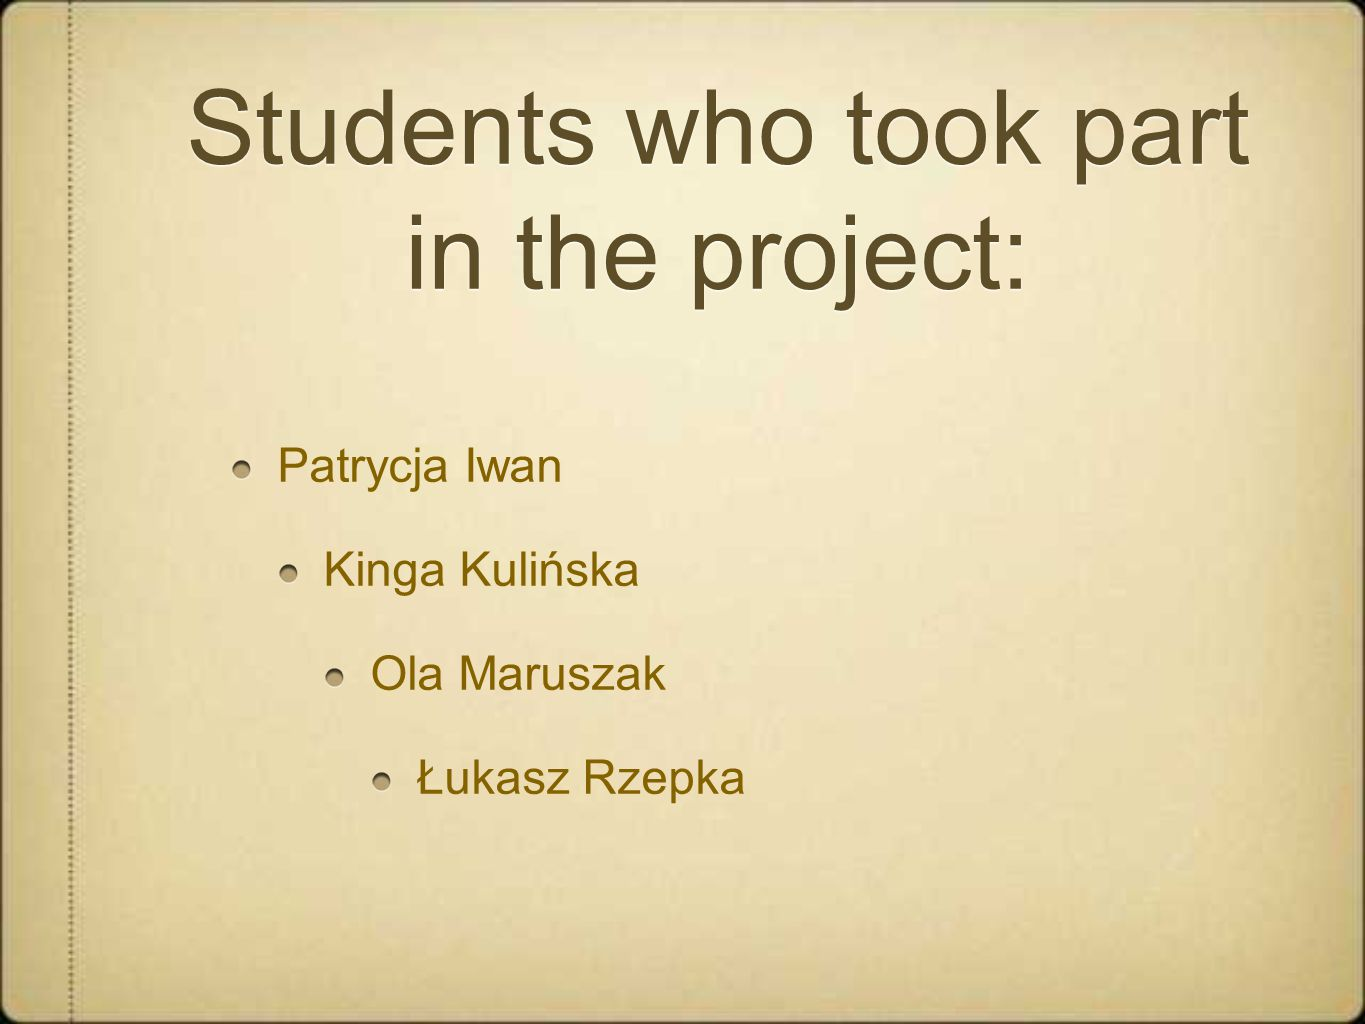 Students who took part in the project: Patrycja Iwan Kinga Kulińska Ola Maruszak Łukasz Rzepka